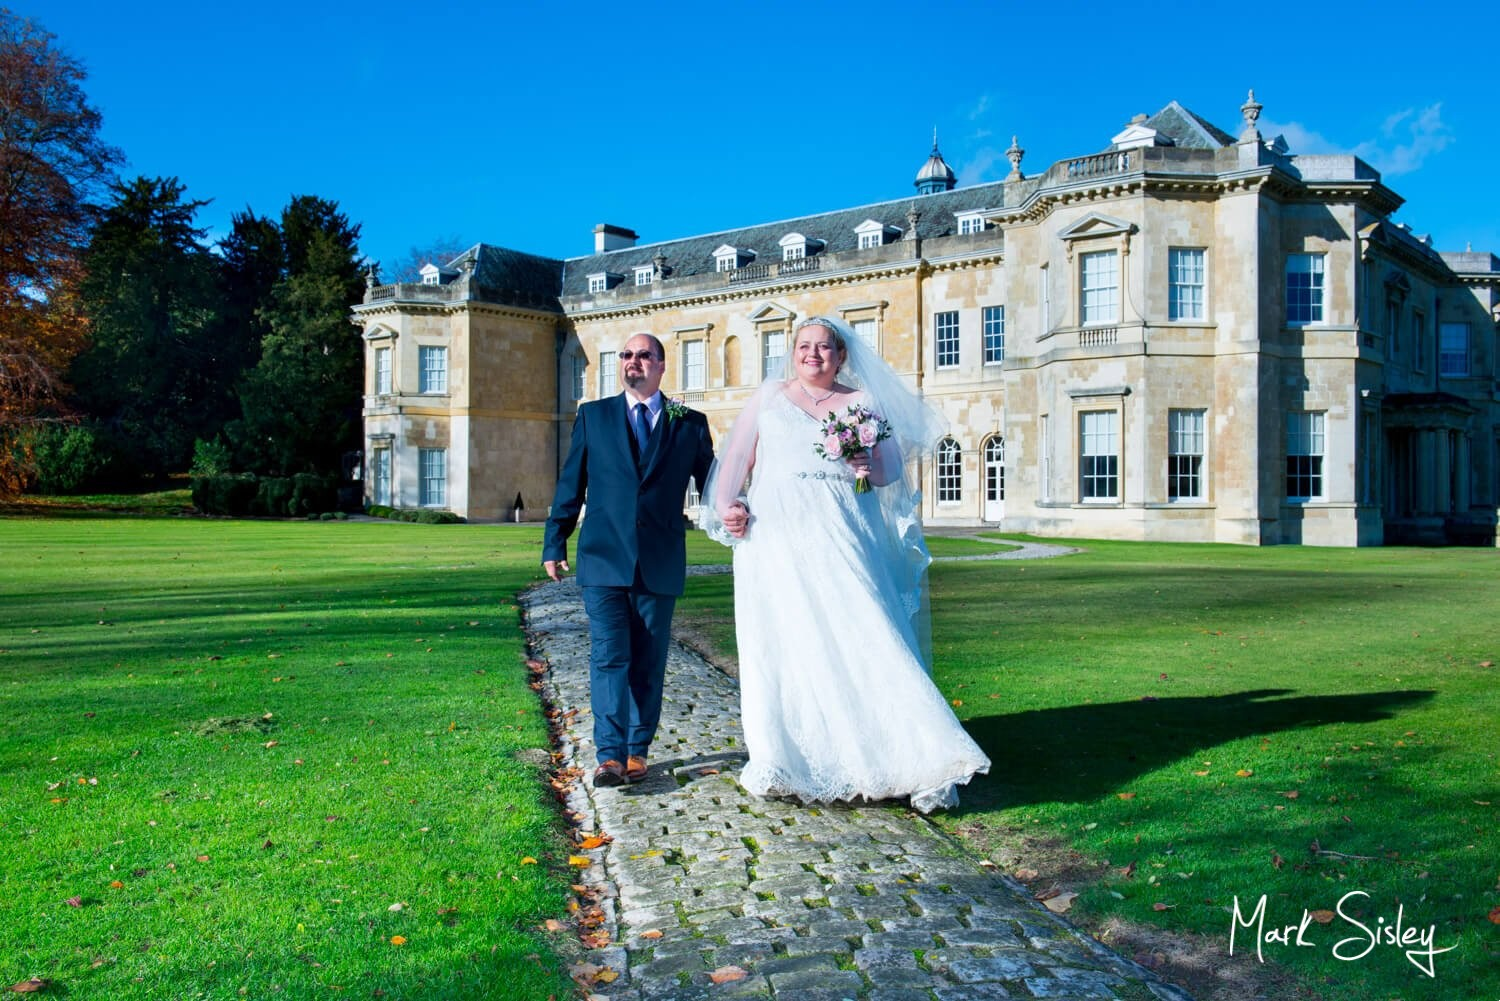 Hartwell House autumn wedding photography under perfect blue skies